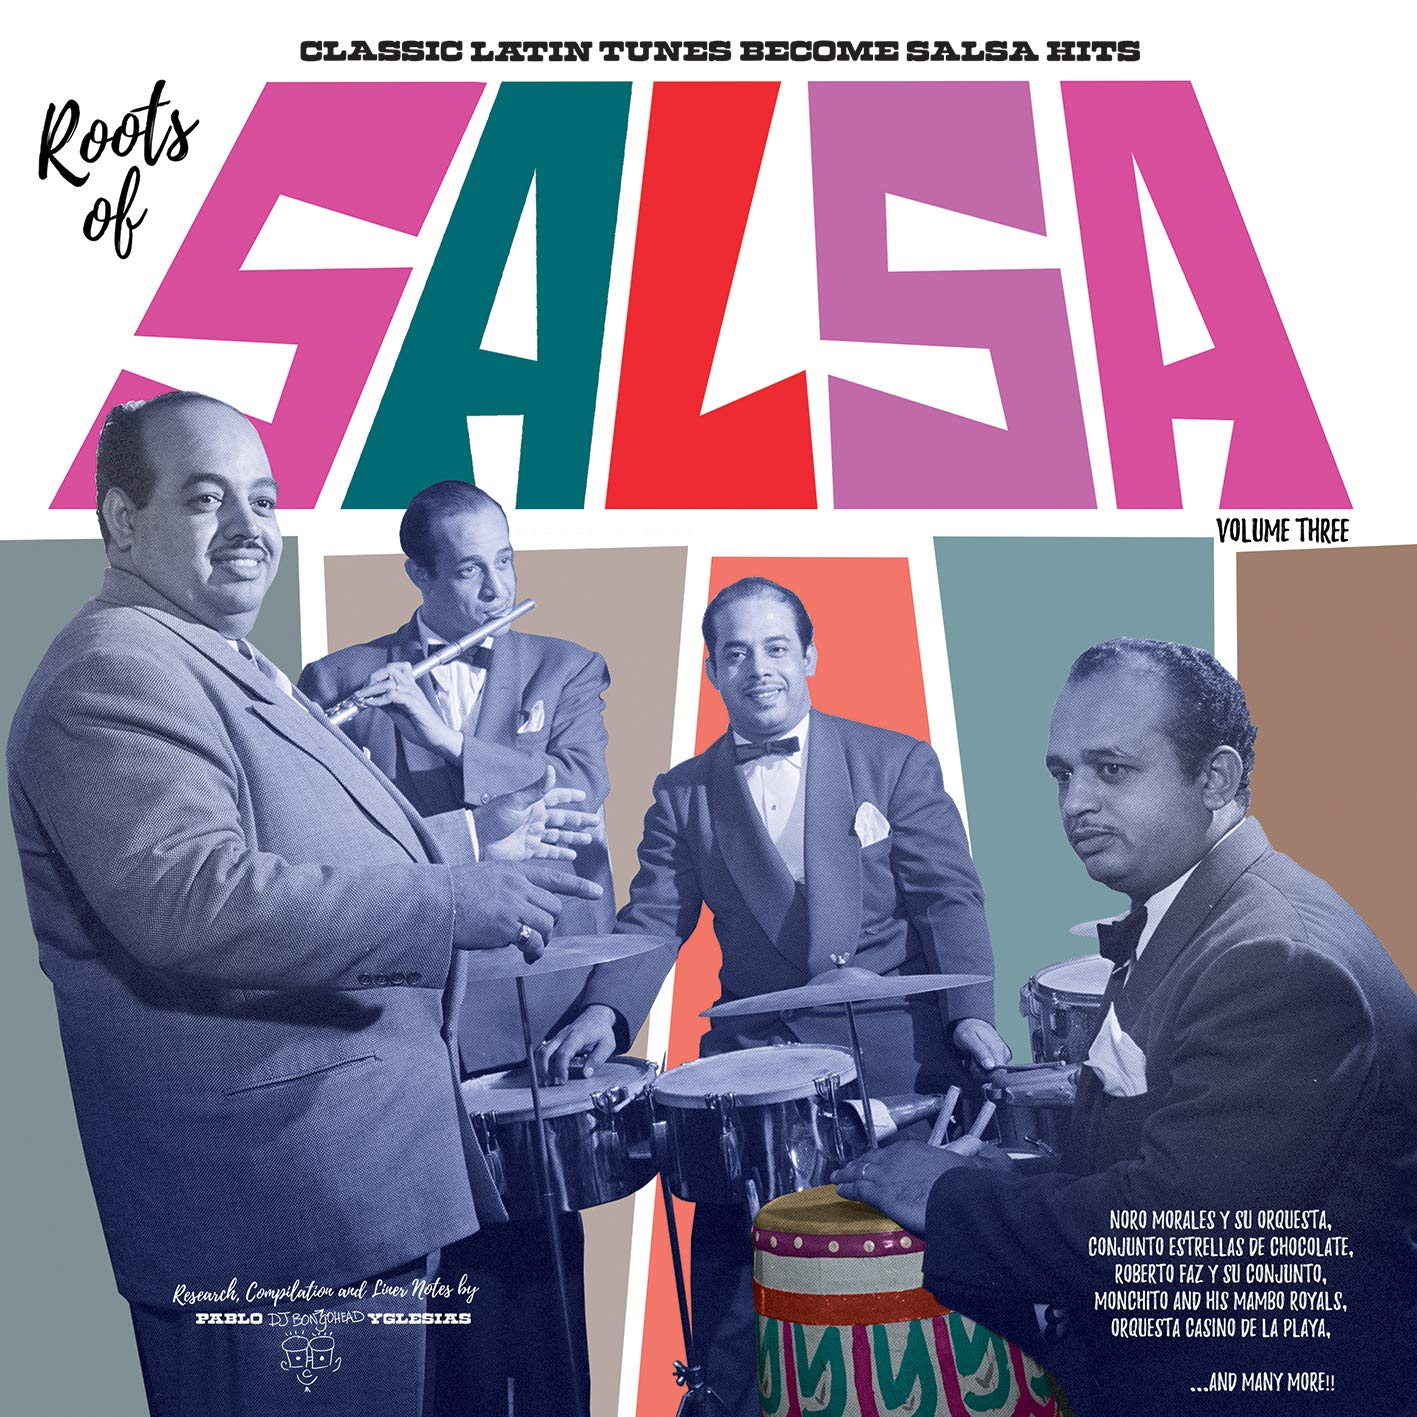 Vinilo : VARIOUS ARTISTS - Roots Of Salsa Volume 3: Latin Tunes Become Salsa (various Artists) (With CD, 2 Pack)